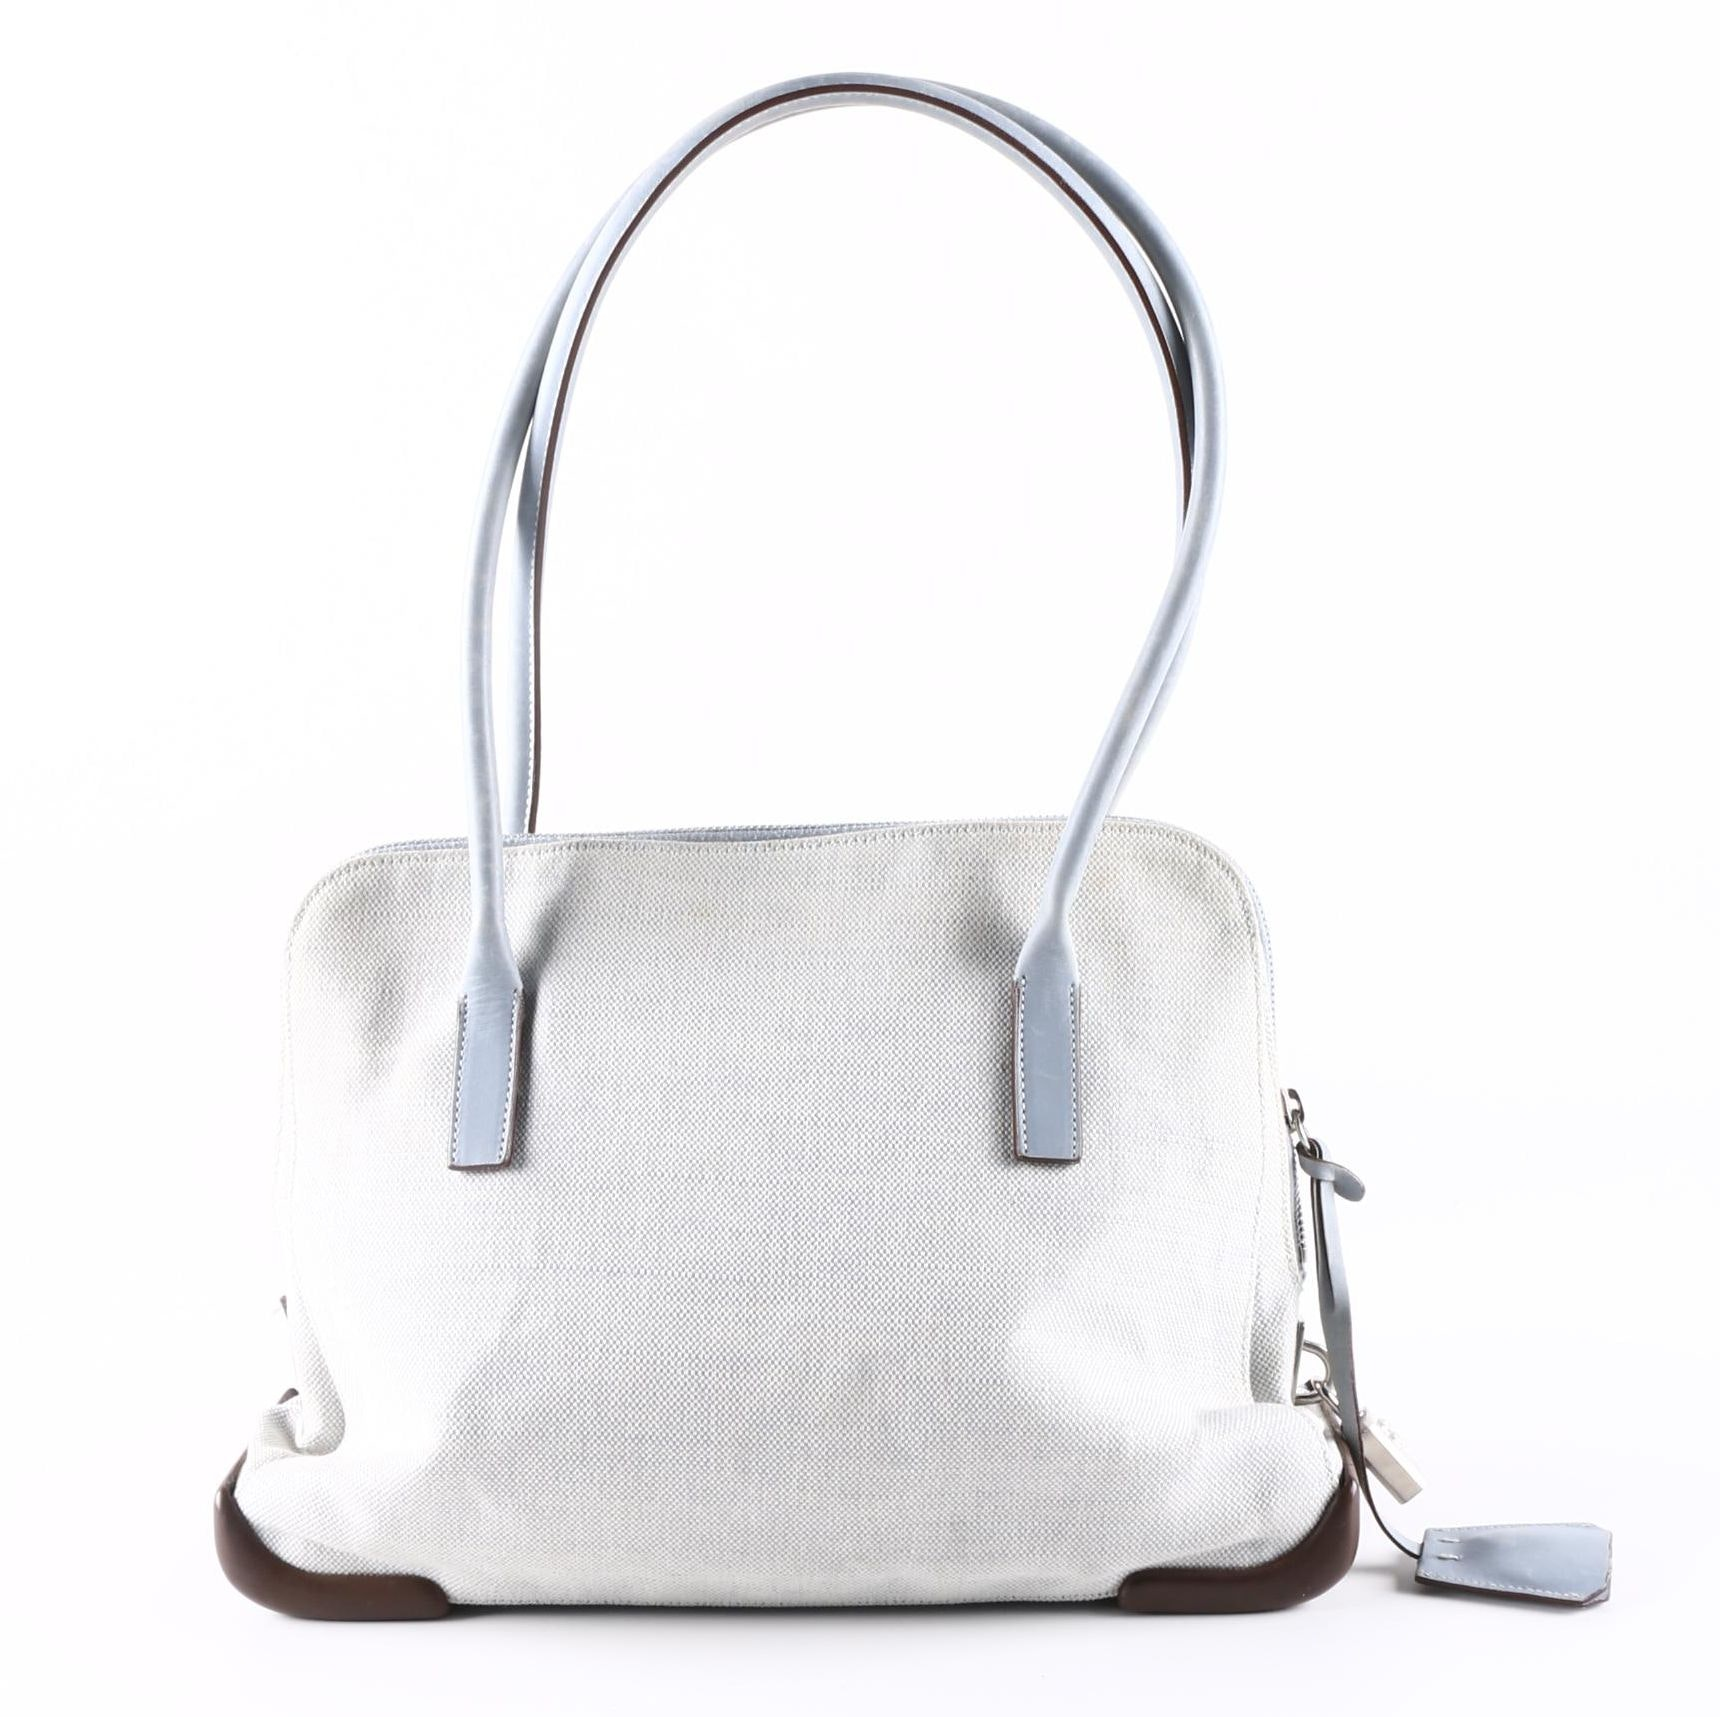 Prada Canvas and Leather Shoulder Tote